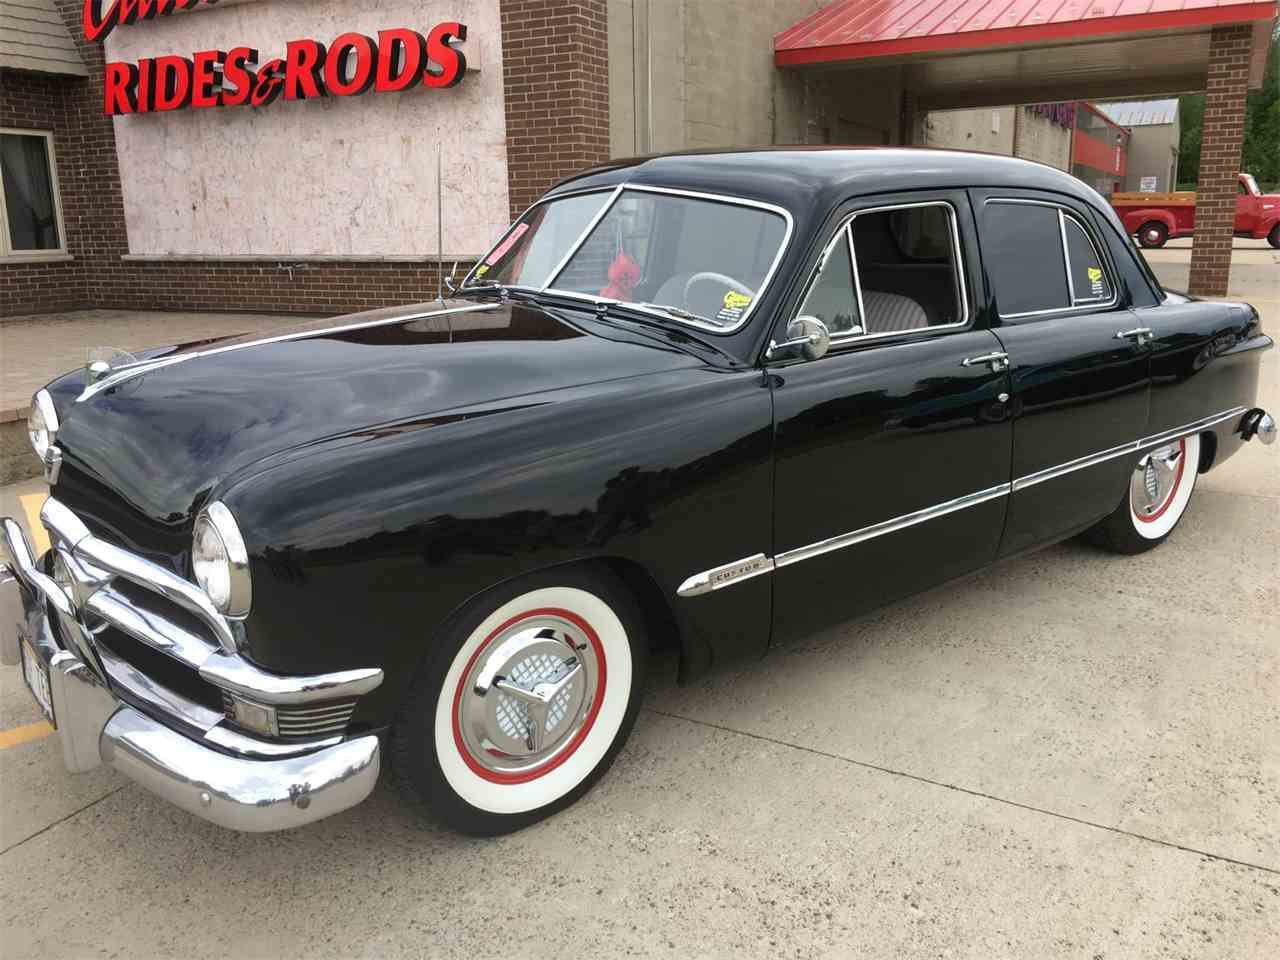 New 1950 Ford Custom For Sale Classiccars Com Cc 988488 On This Month Original 1024 x 768